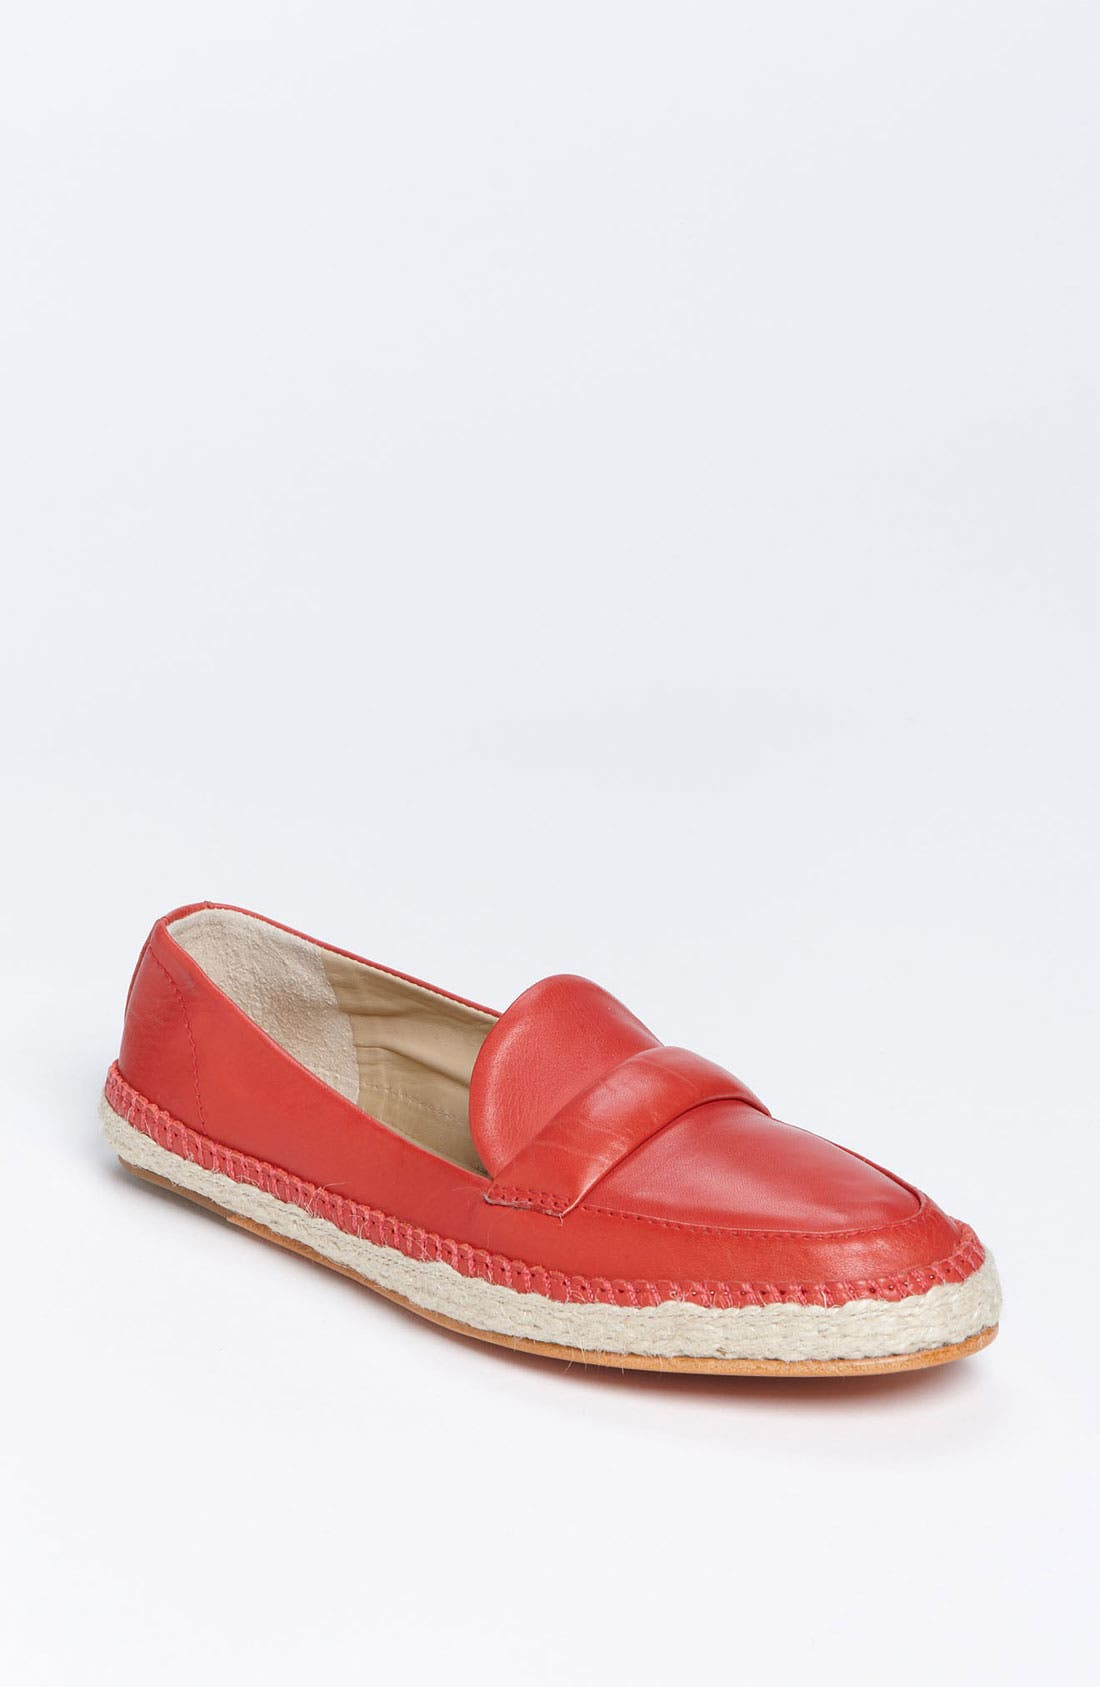 Main Image - rag & bone 'Sophia' Loafer